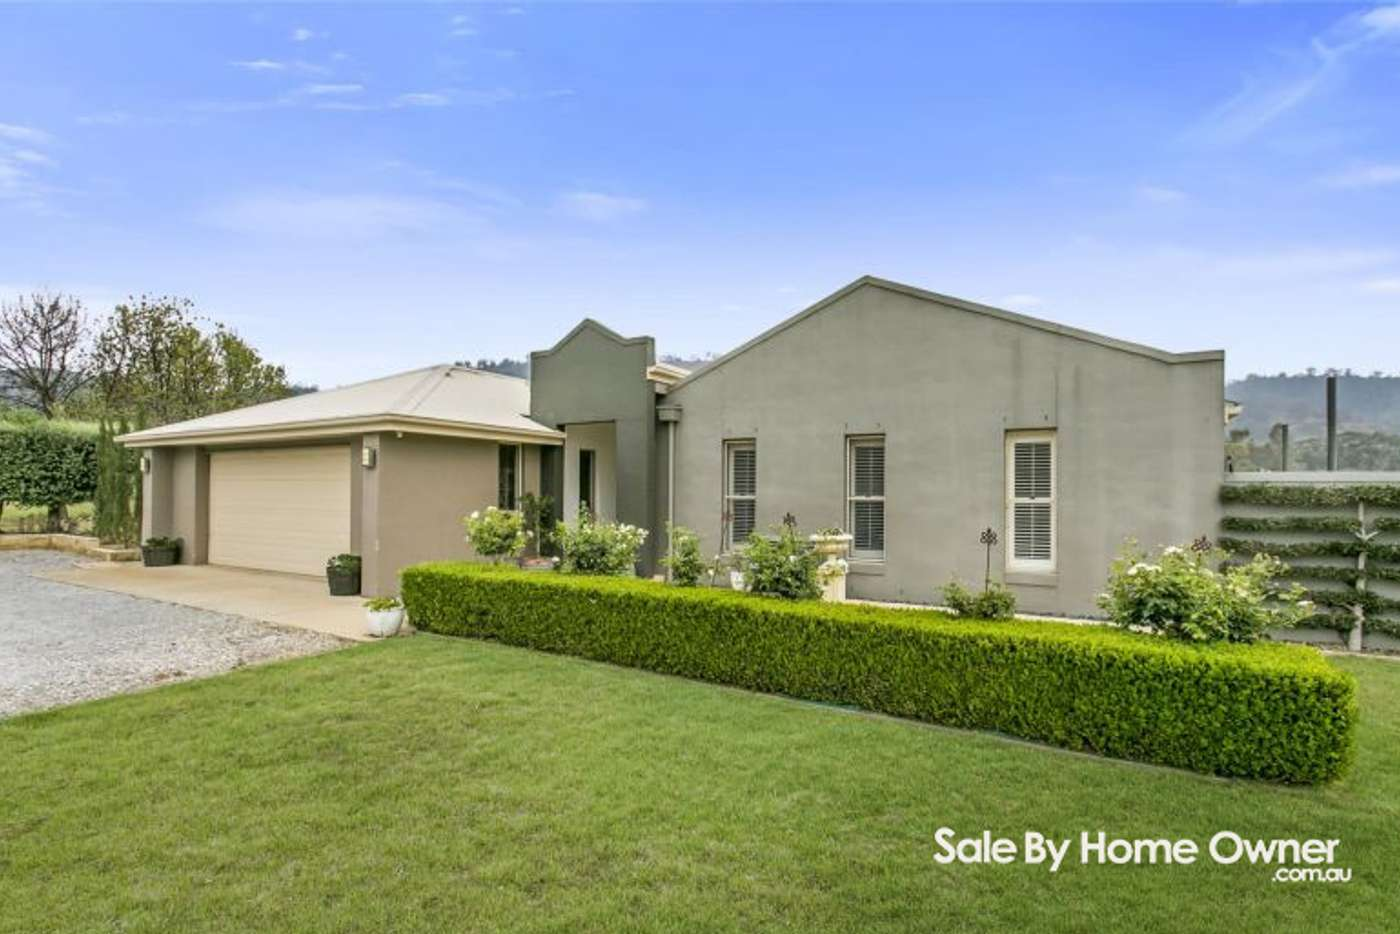 Main view of Homely house listing, 24 Wyndham Close, Daruka NSW 2340